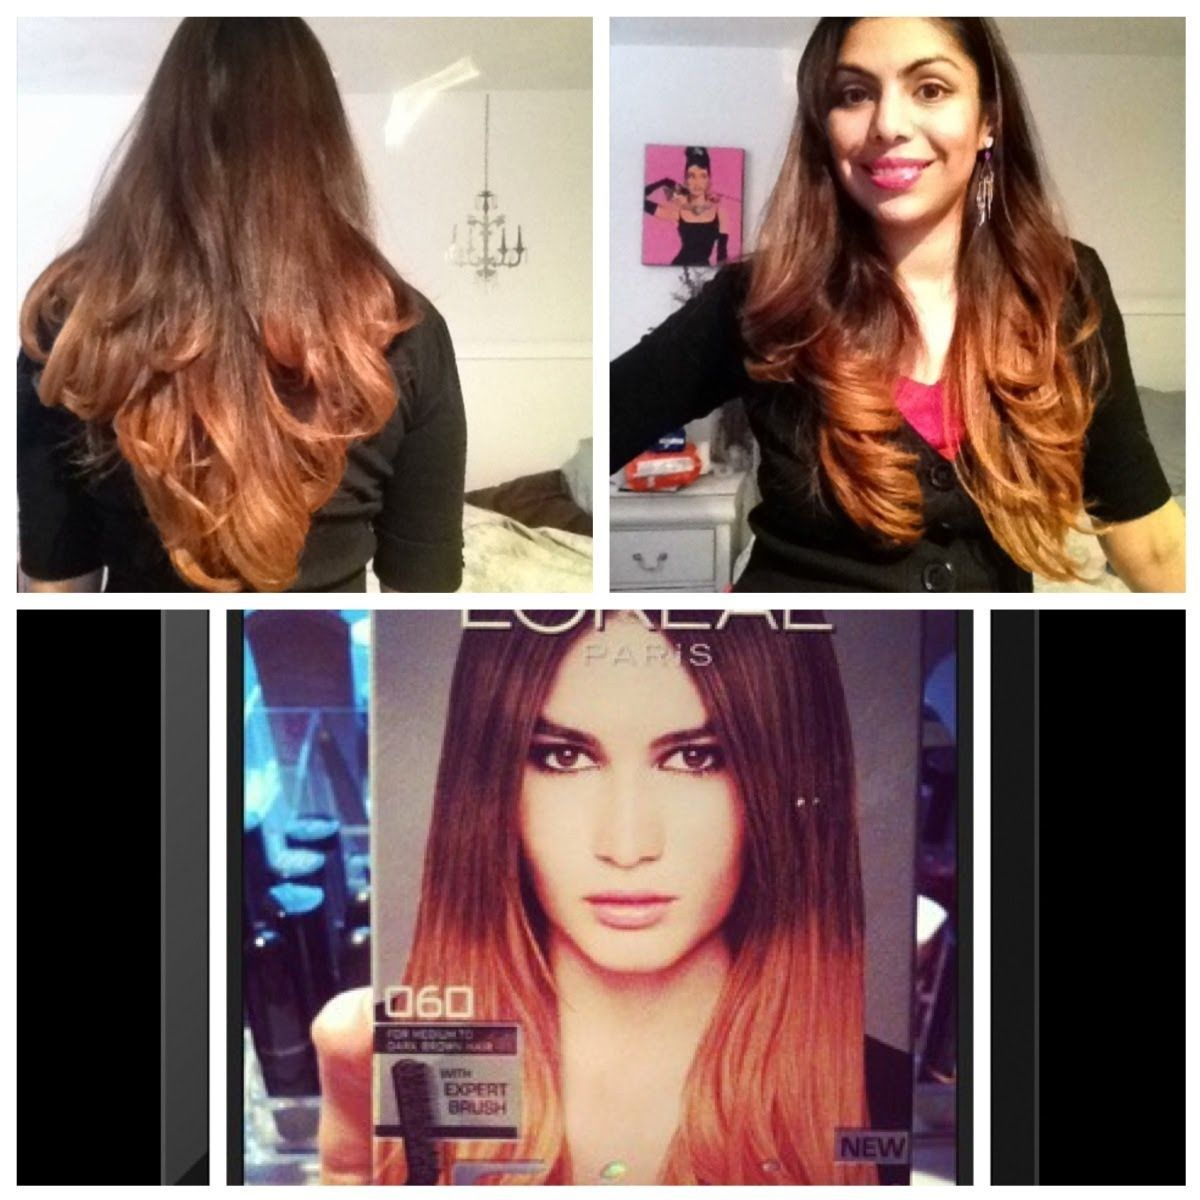 Loreal wild ombre hair tutorial for dark brown hair full tutorial